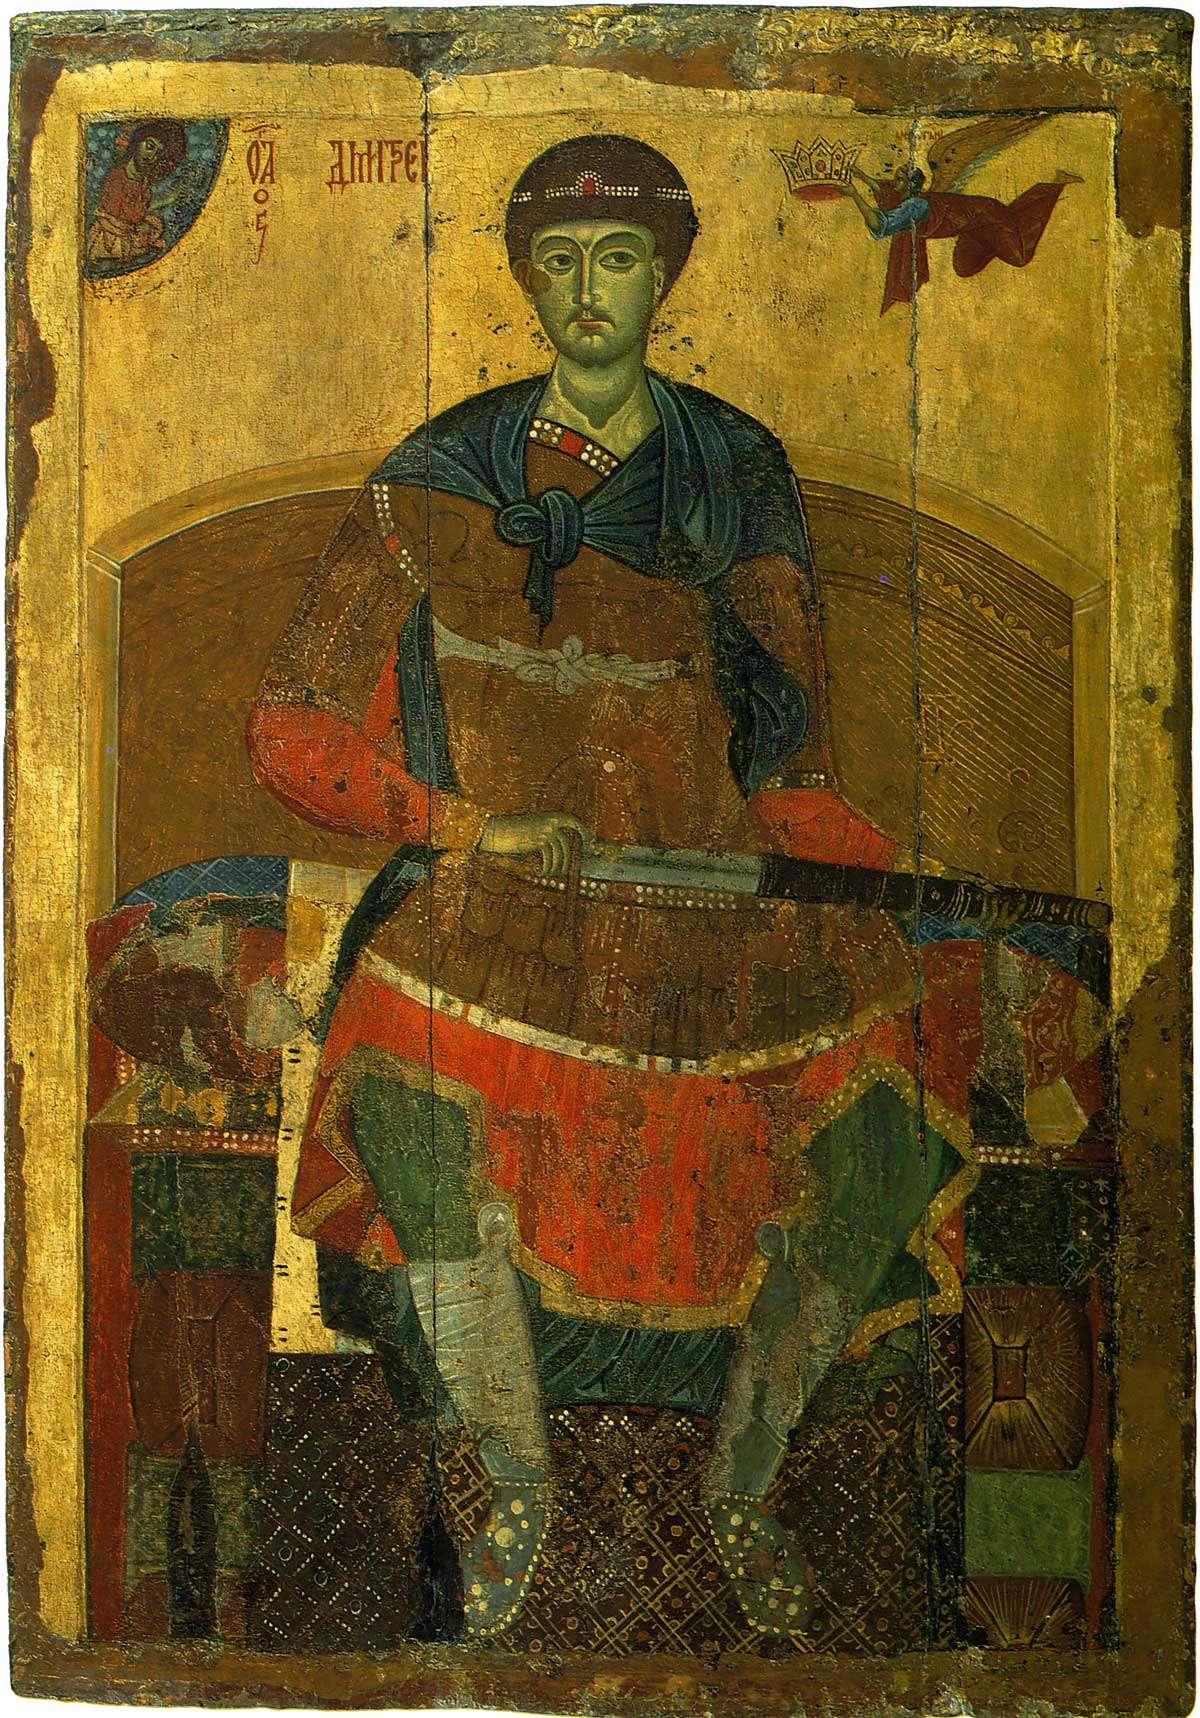 Saint Demetrios de Thessalonique dans immagini sacre Saint_Demetrios_de_Thessalonique